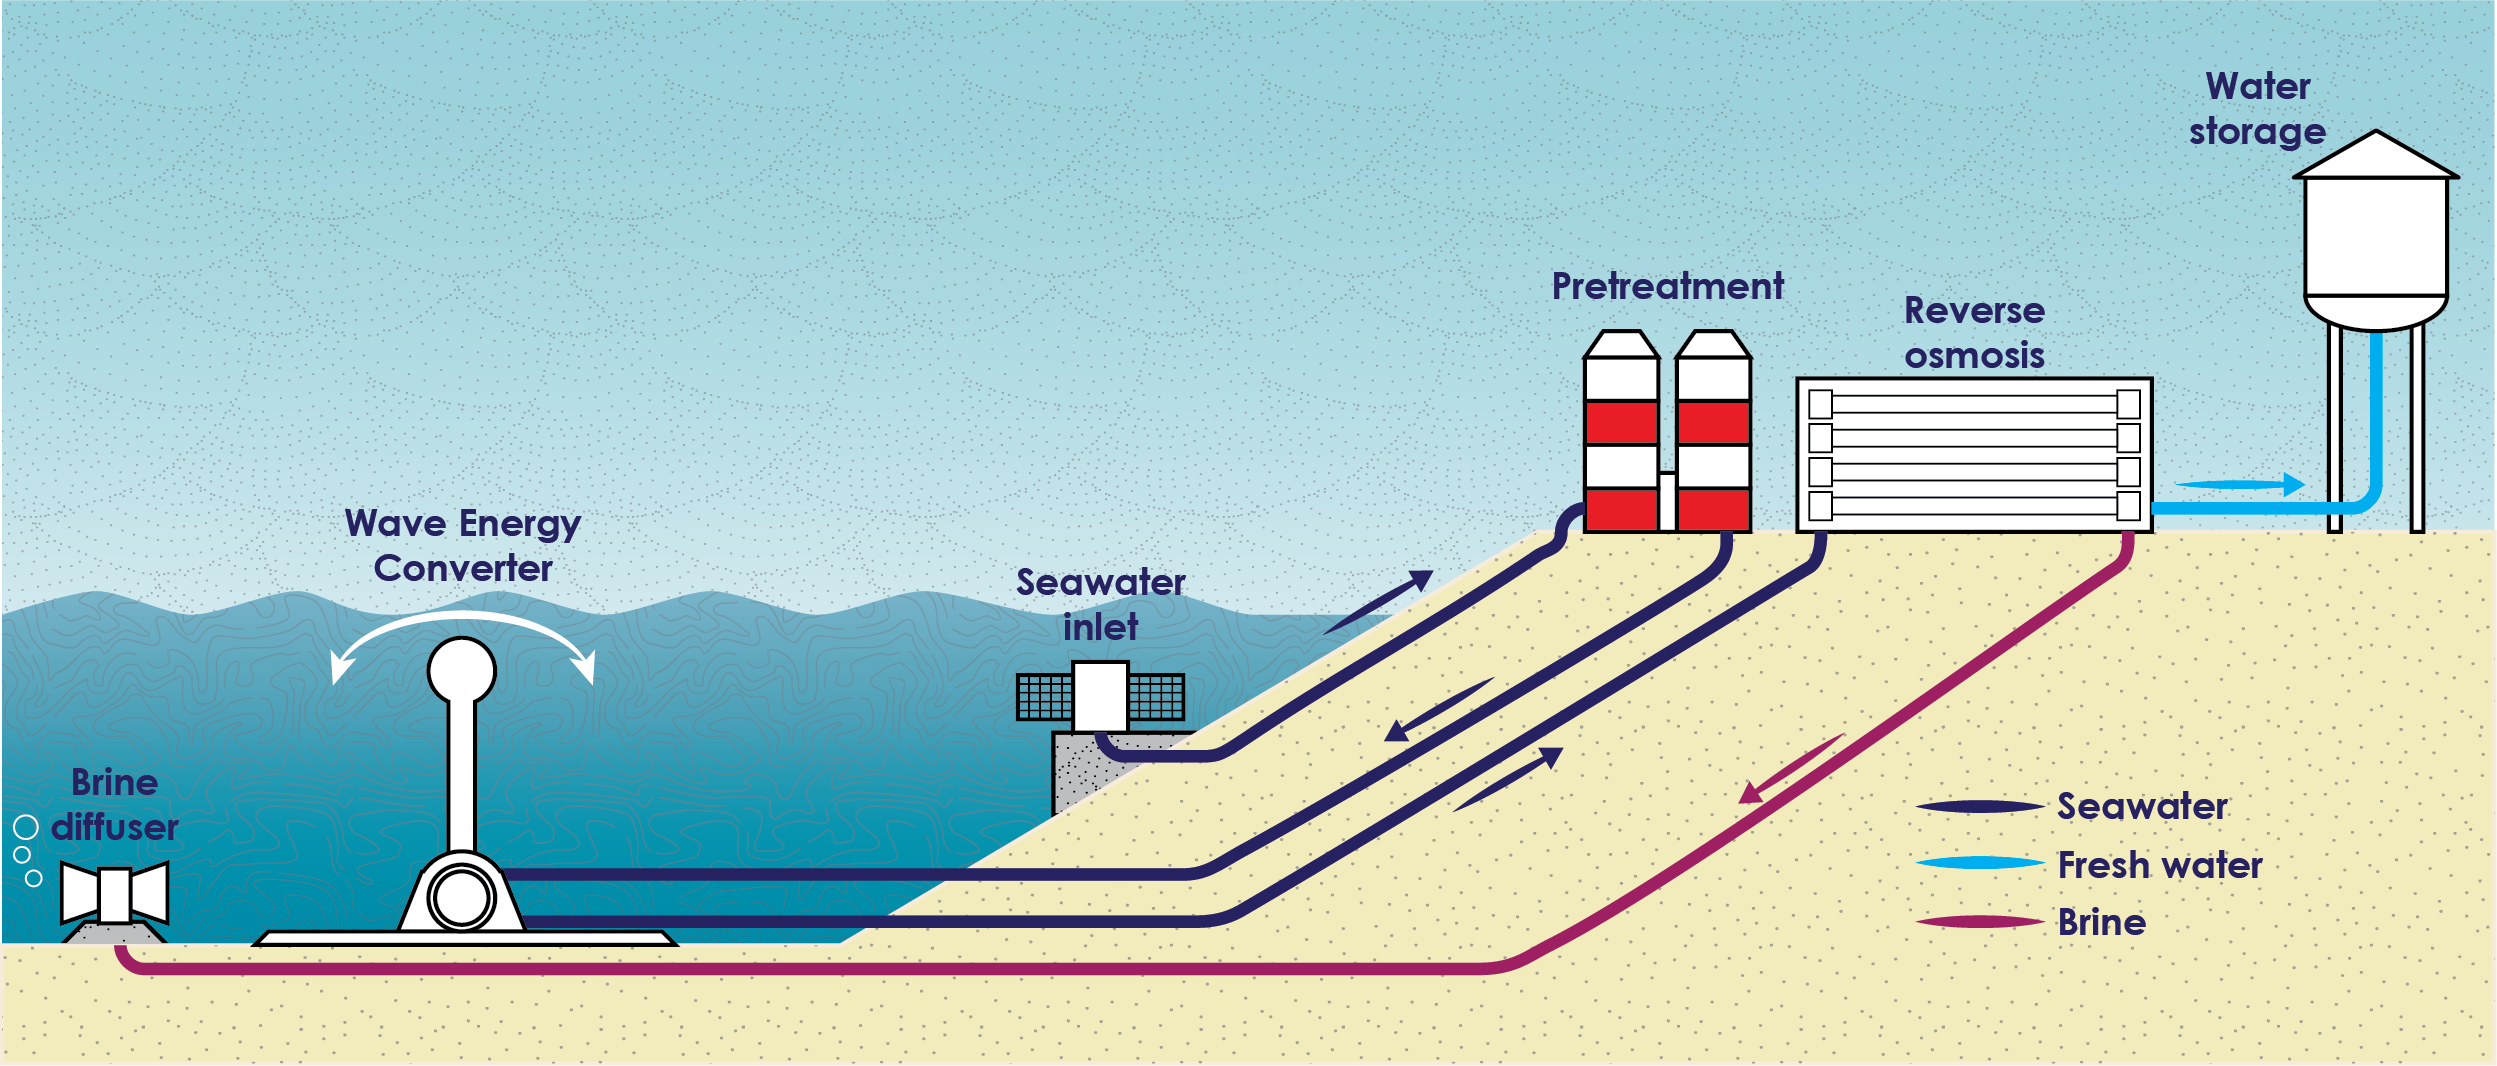 Wave-powered desalination – a cheaper alternative for water security?